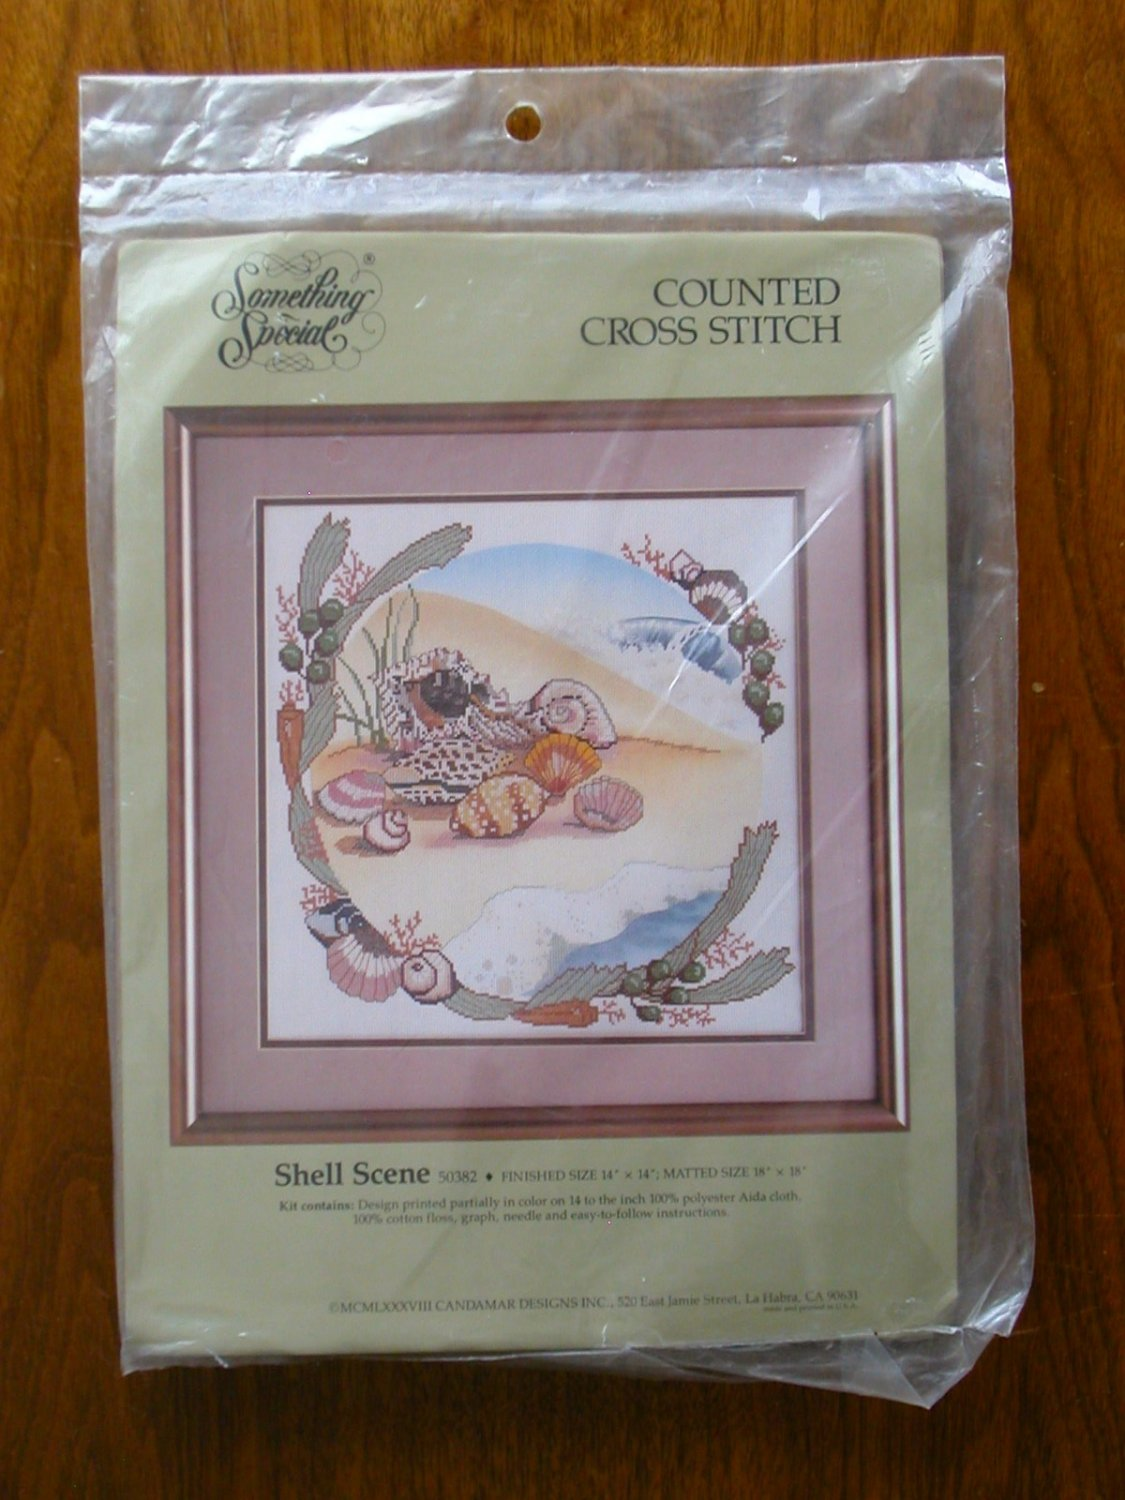 Something Special Shell Scene beach seashells counted cross stitch kit 50382